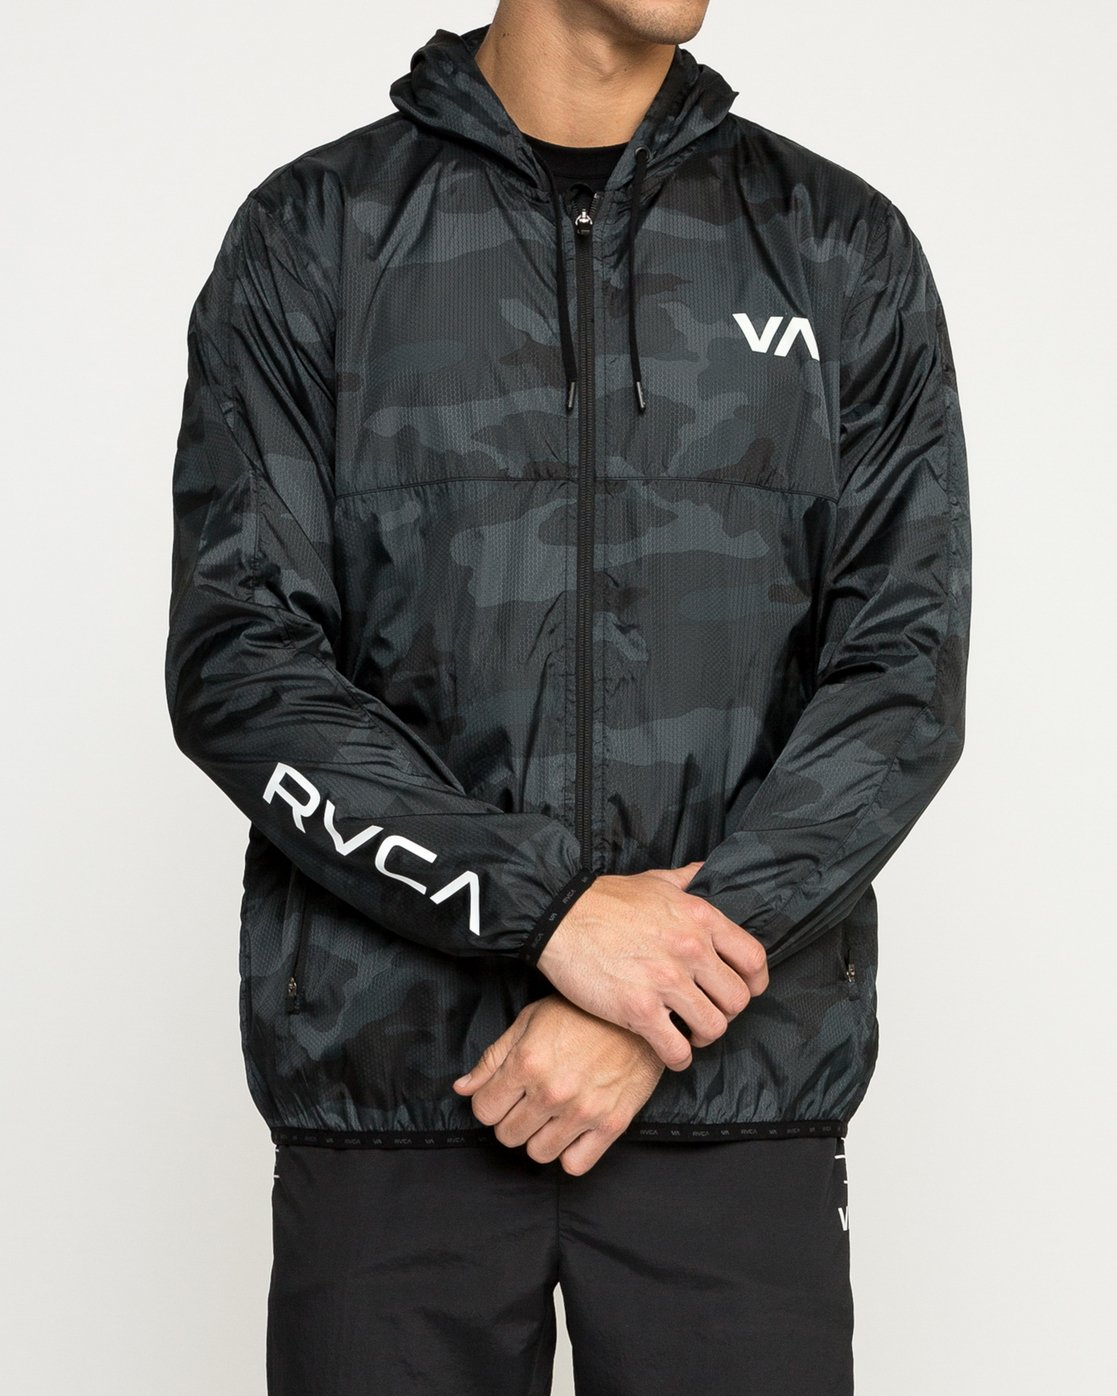 2 Hexstop Iv - Jacket for Men Camo N4JKMBRVP9 RVCA